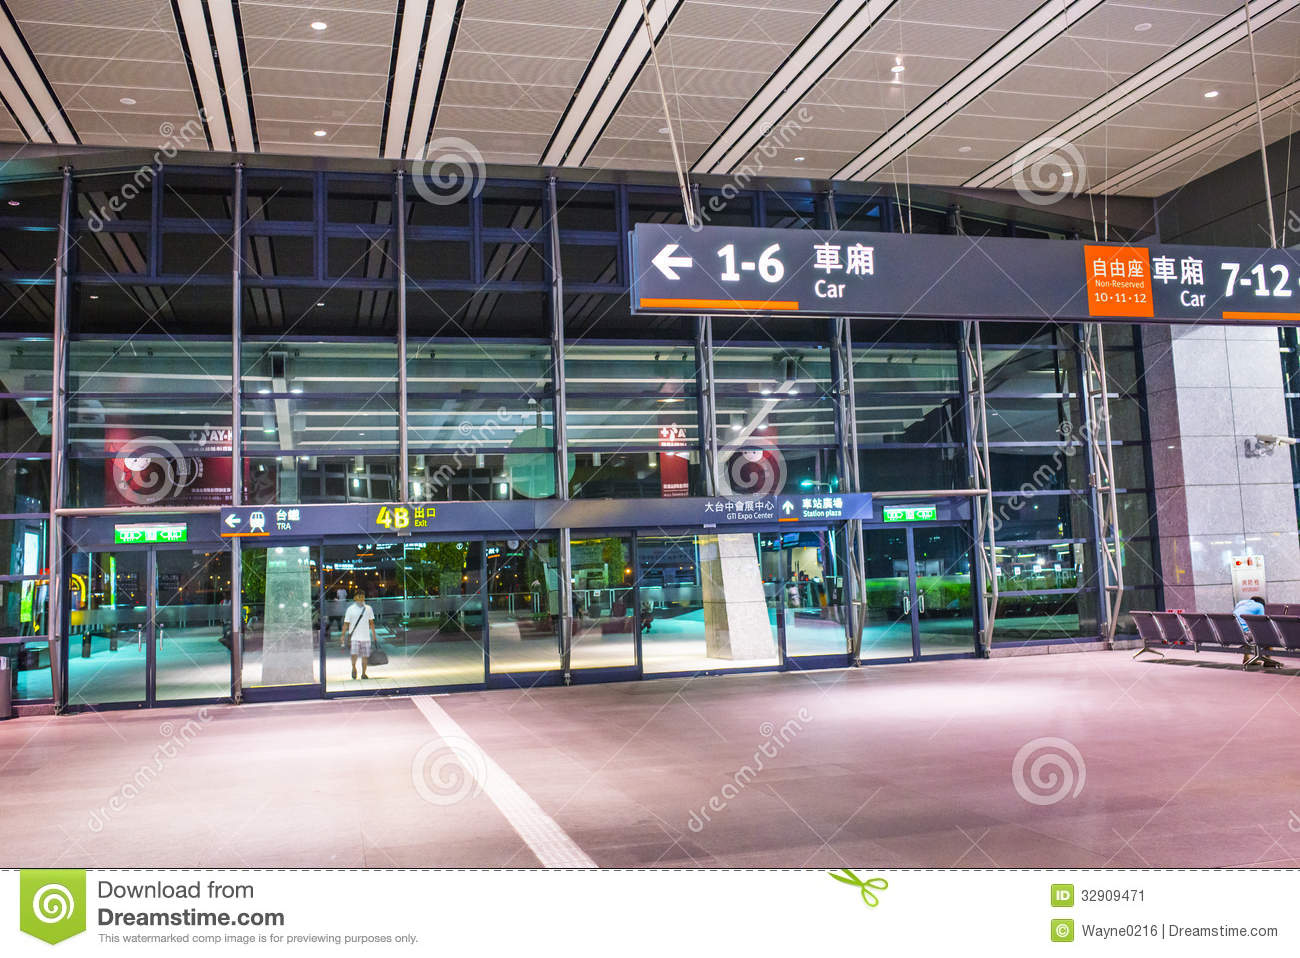 7f7435577 TAICHUNG -AUGUST 12 2013: Taiwan High Speed Rail Taichung Station platform  and waiting room, August 12 2013 in Taichung, Taiwan's high-speed railway  has ...